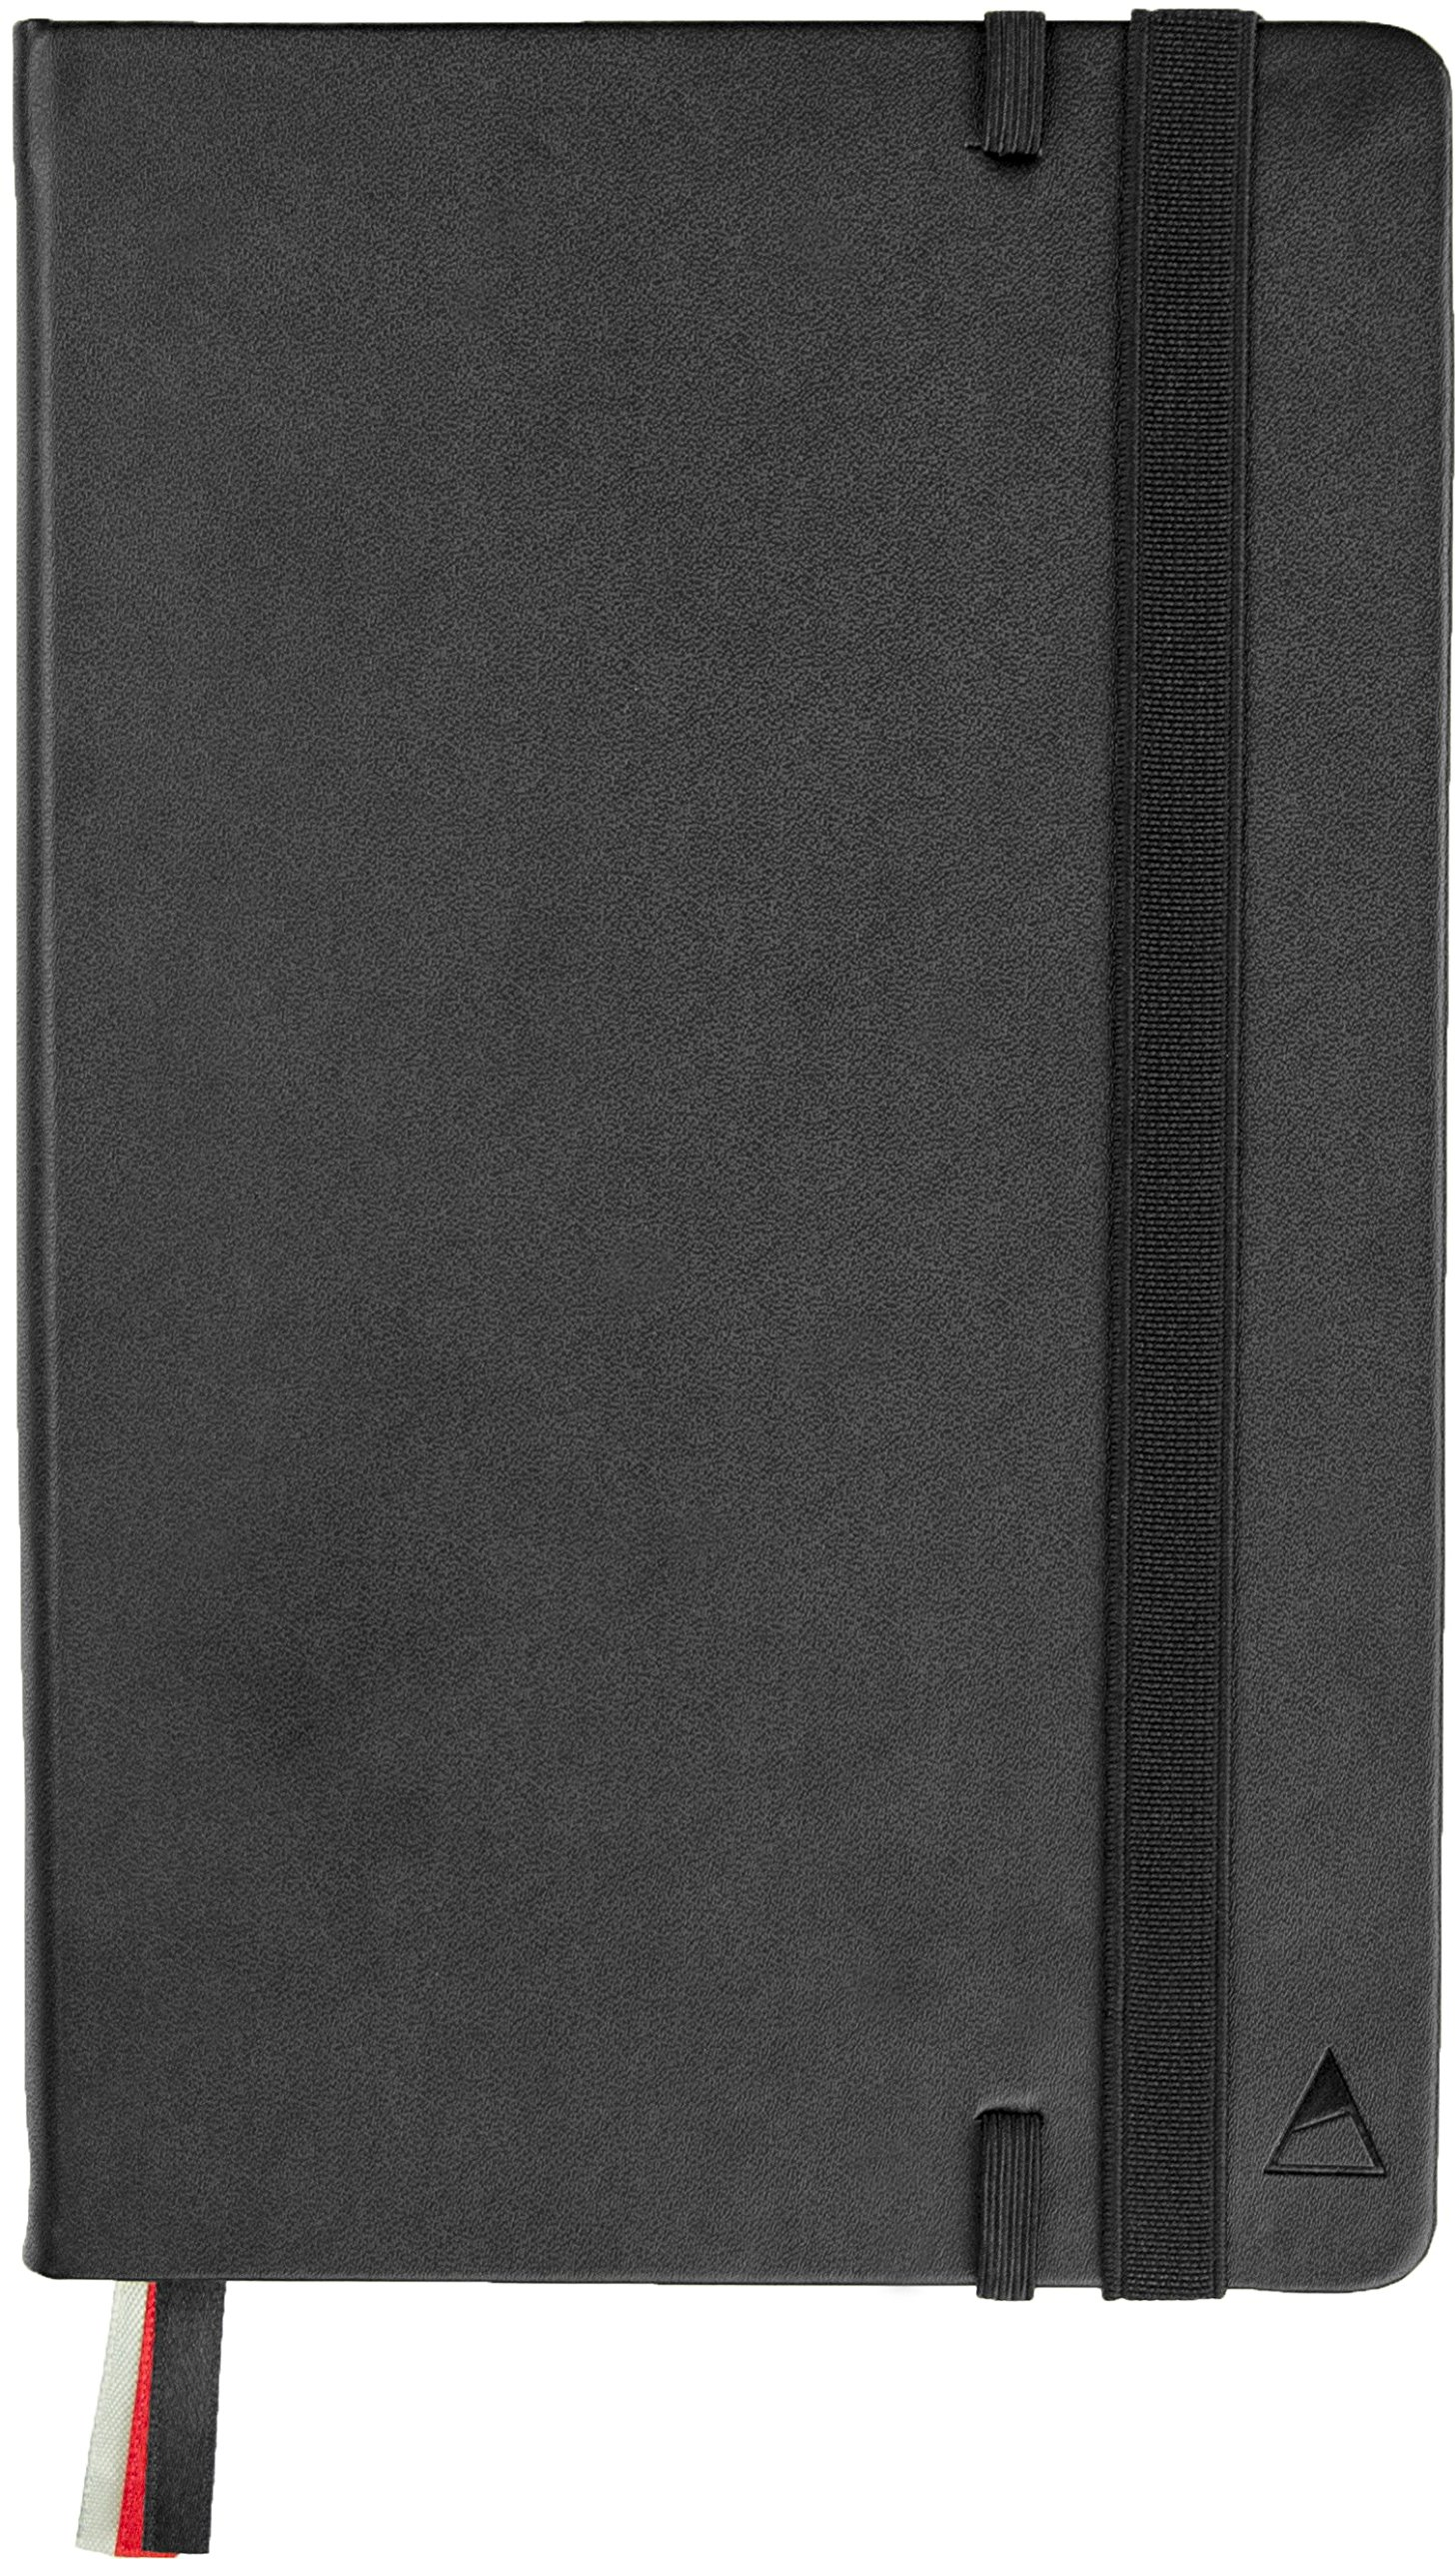 Nomatic Notebook (Black)-240 Ruled Pages, Hard Cover, Perforated Pages, Built-in Pen Holder, Whiteboard Paper